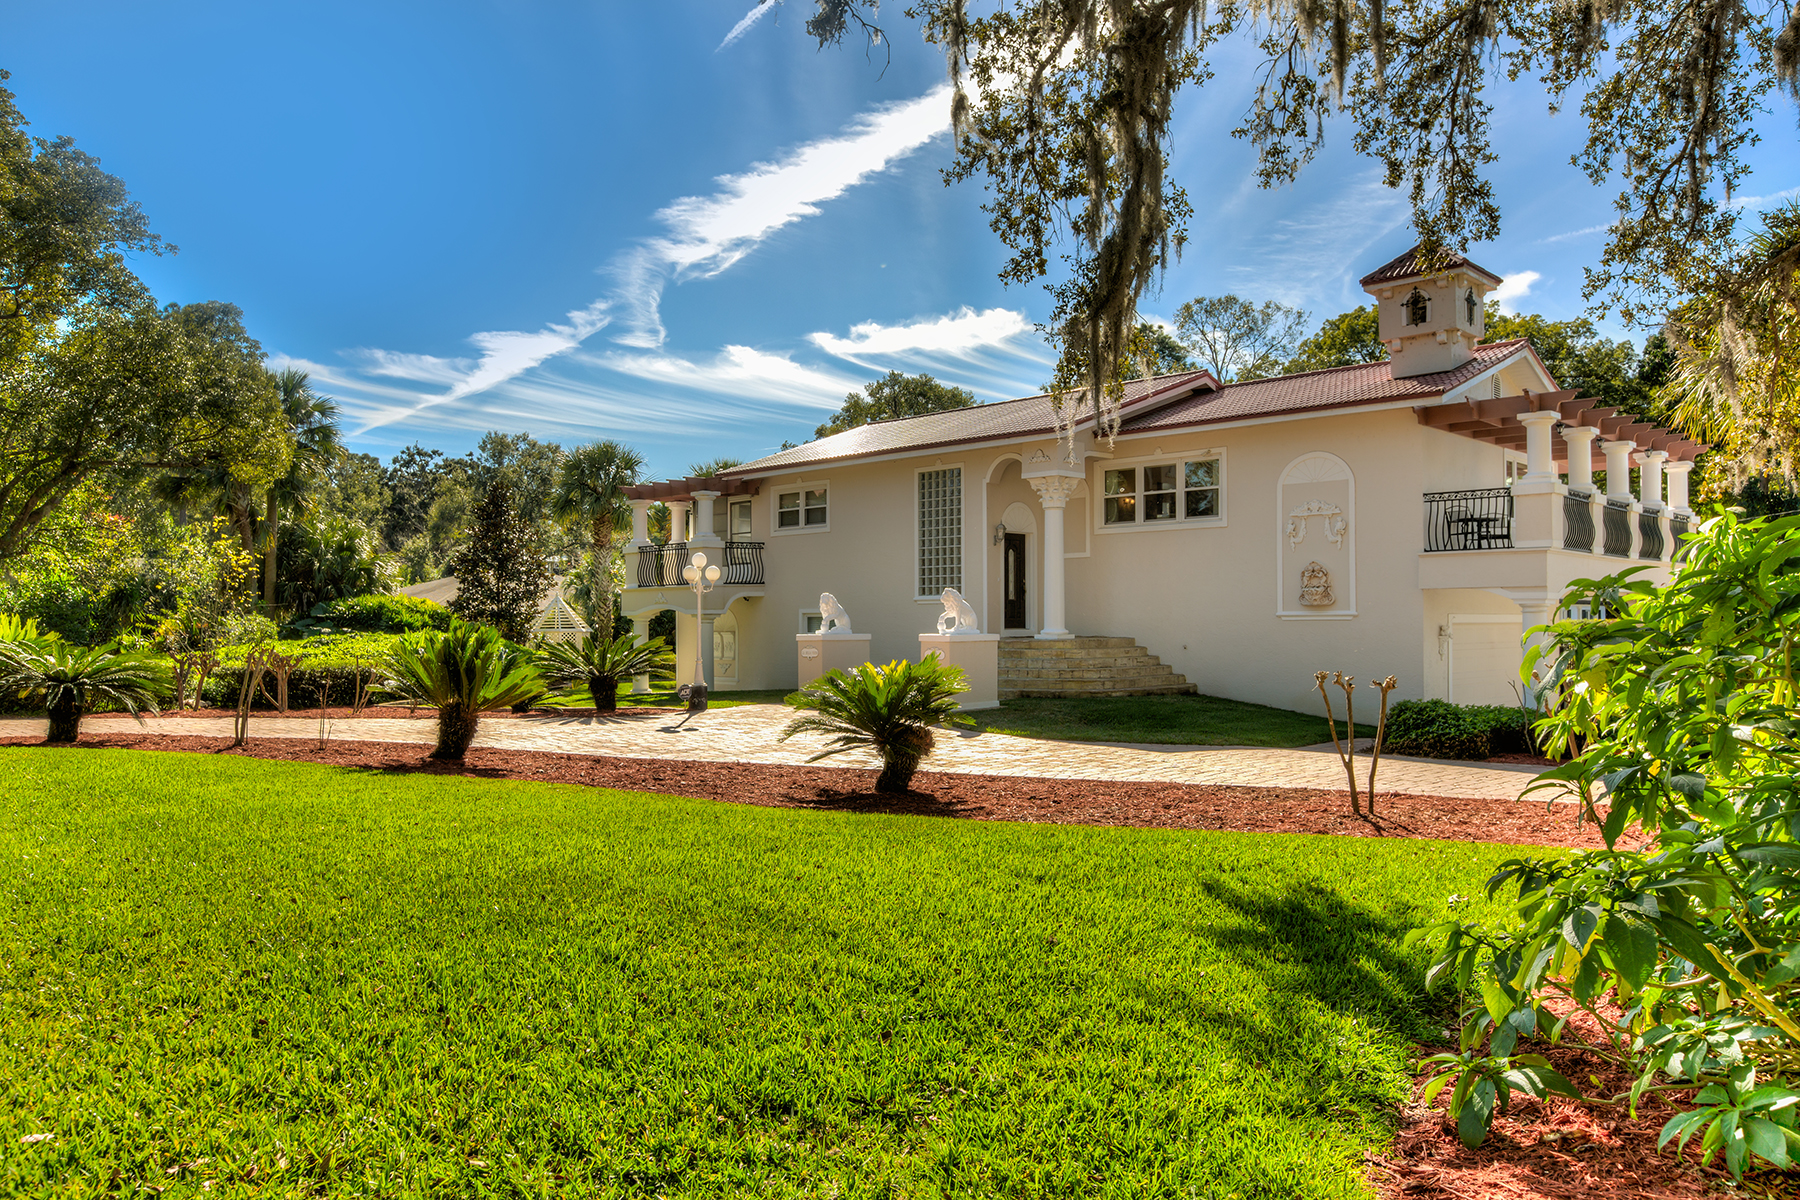 Single Family Homes for Sale at WINDERMERE-ORLANDO 108 Forest St Windermere, Florida 34786 United States